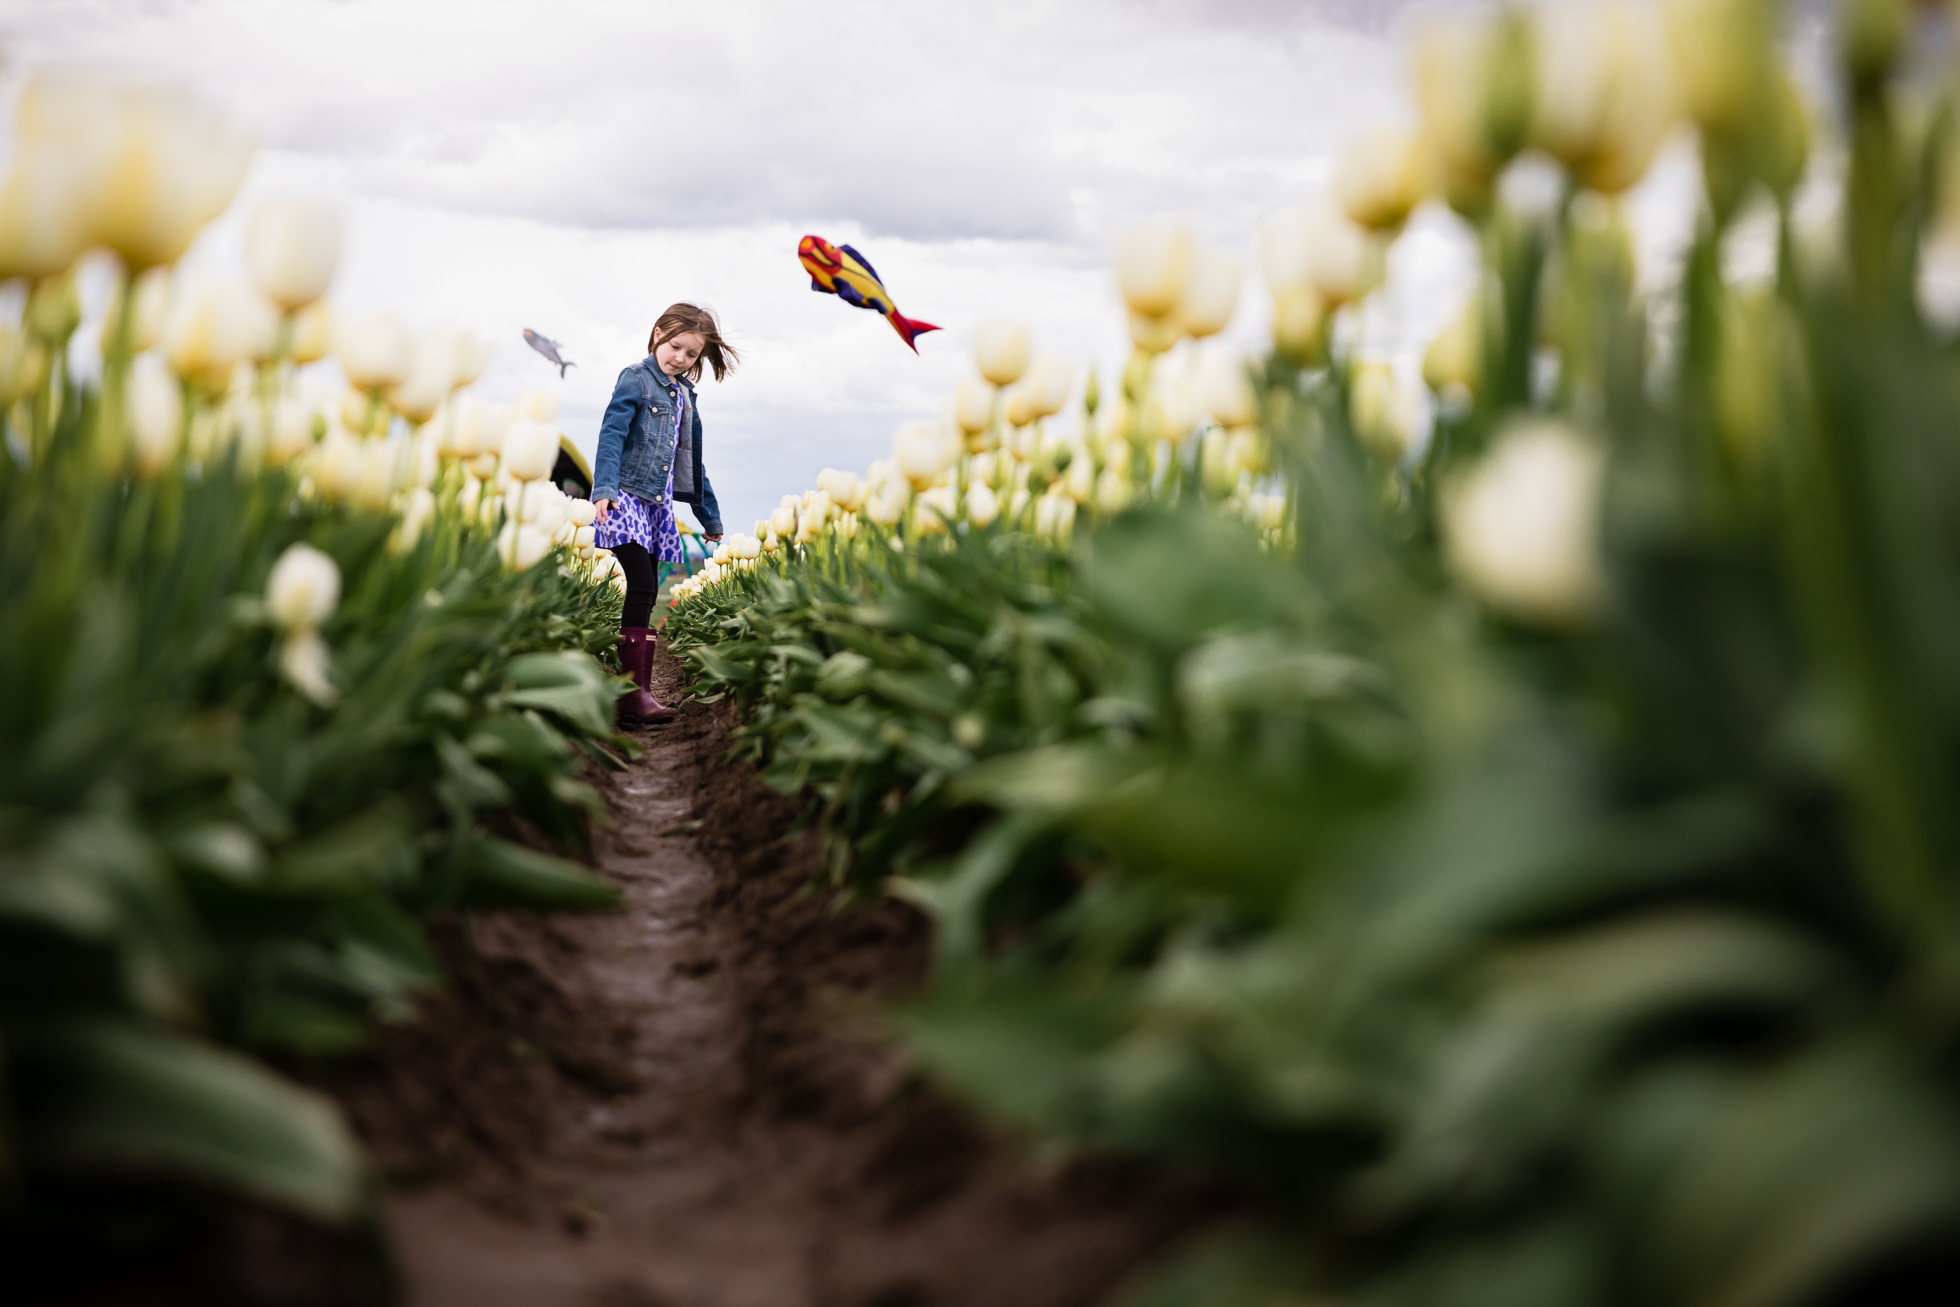 girl standing amidst white tulips with colorful kites blowing in the wind behind her by rebecca hunnicutt farren